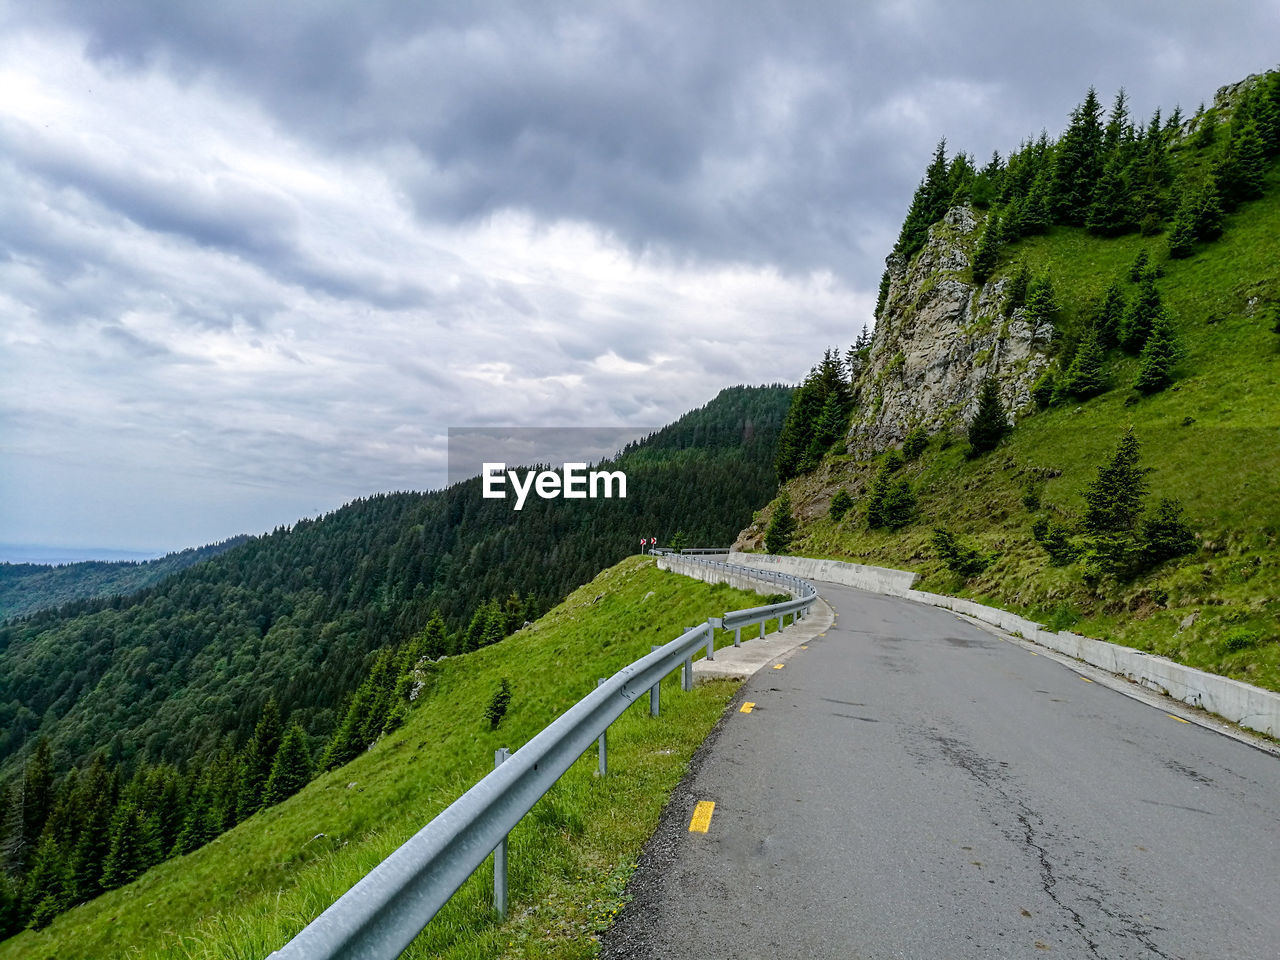 road, cloud - sky, sky, the way forward, mountain, transportation, scenics, tree, nature, day, tranquility, green color, no people, mountain road, outdoors, tranquil scene, mountain range, winding road, beauty in nature, landscape, grass